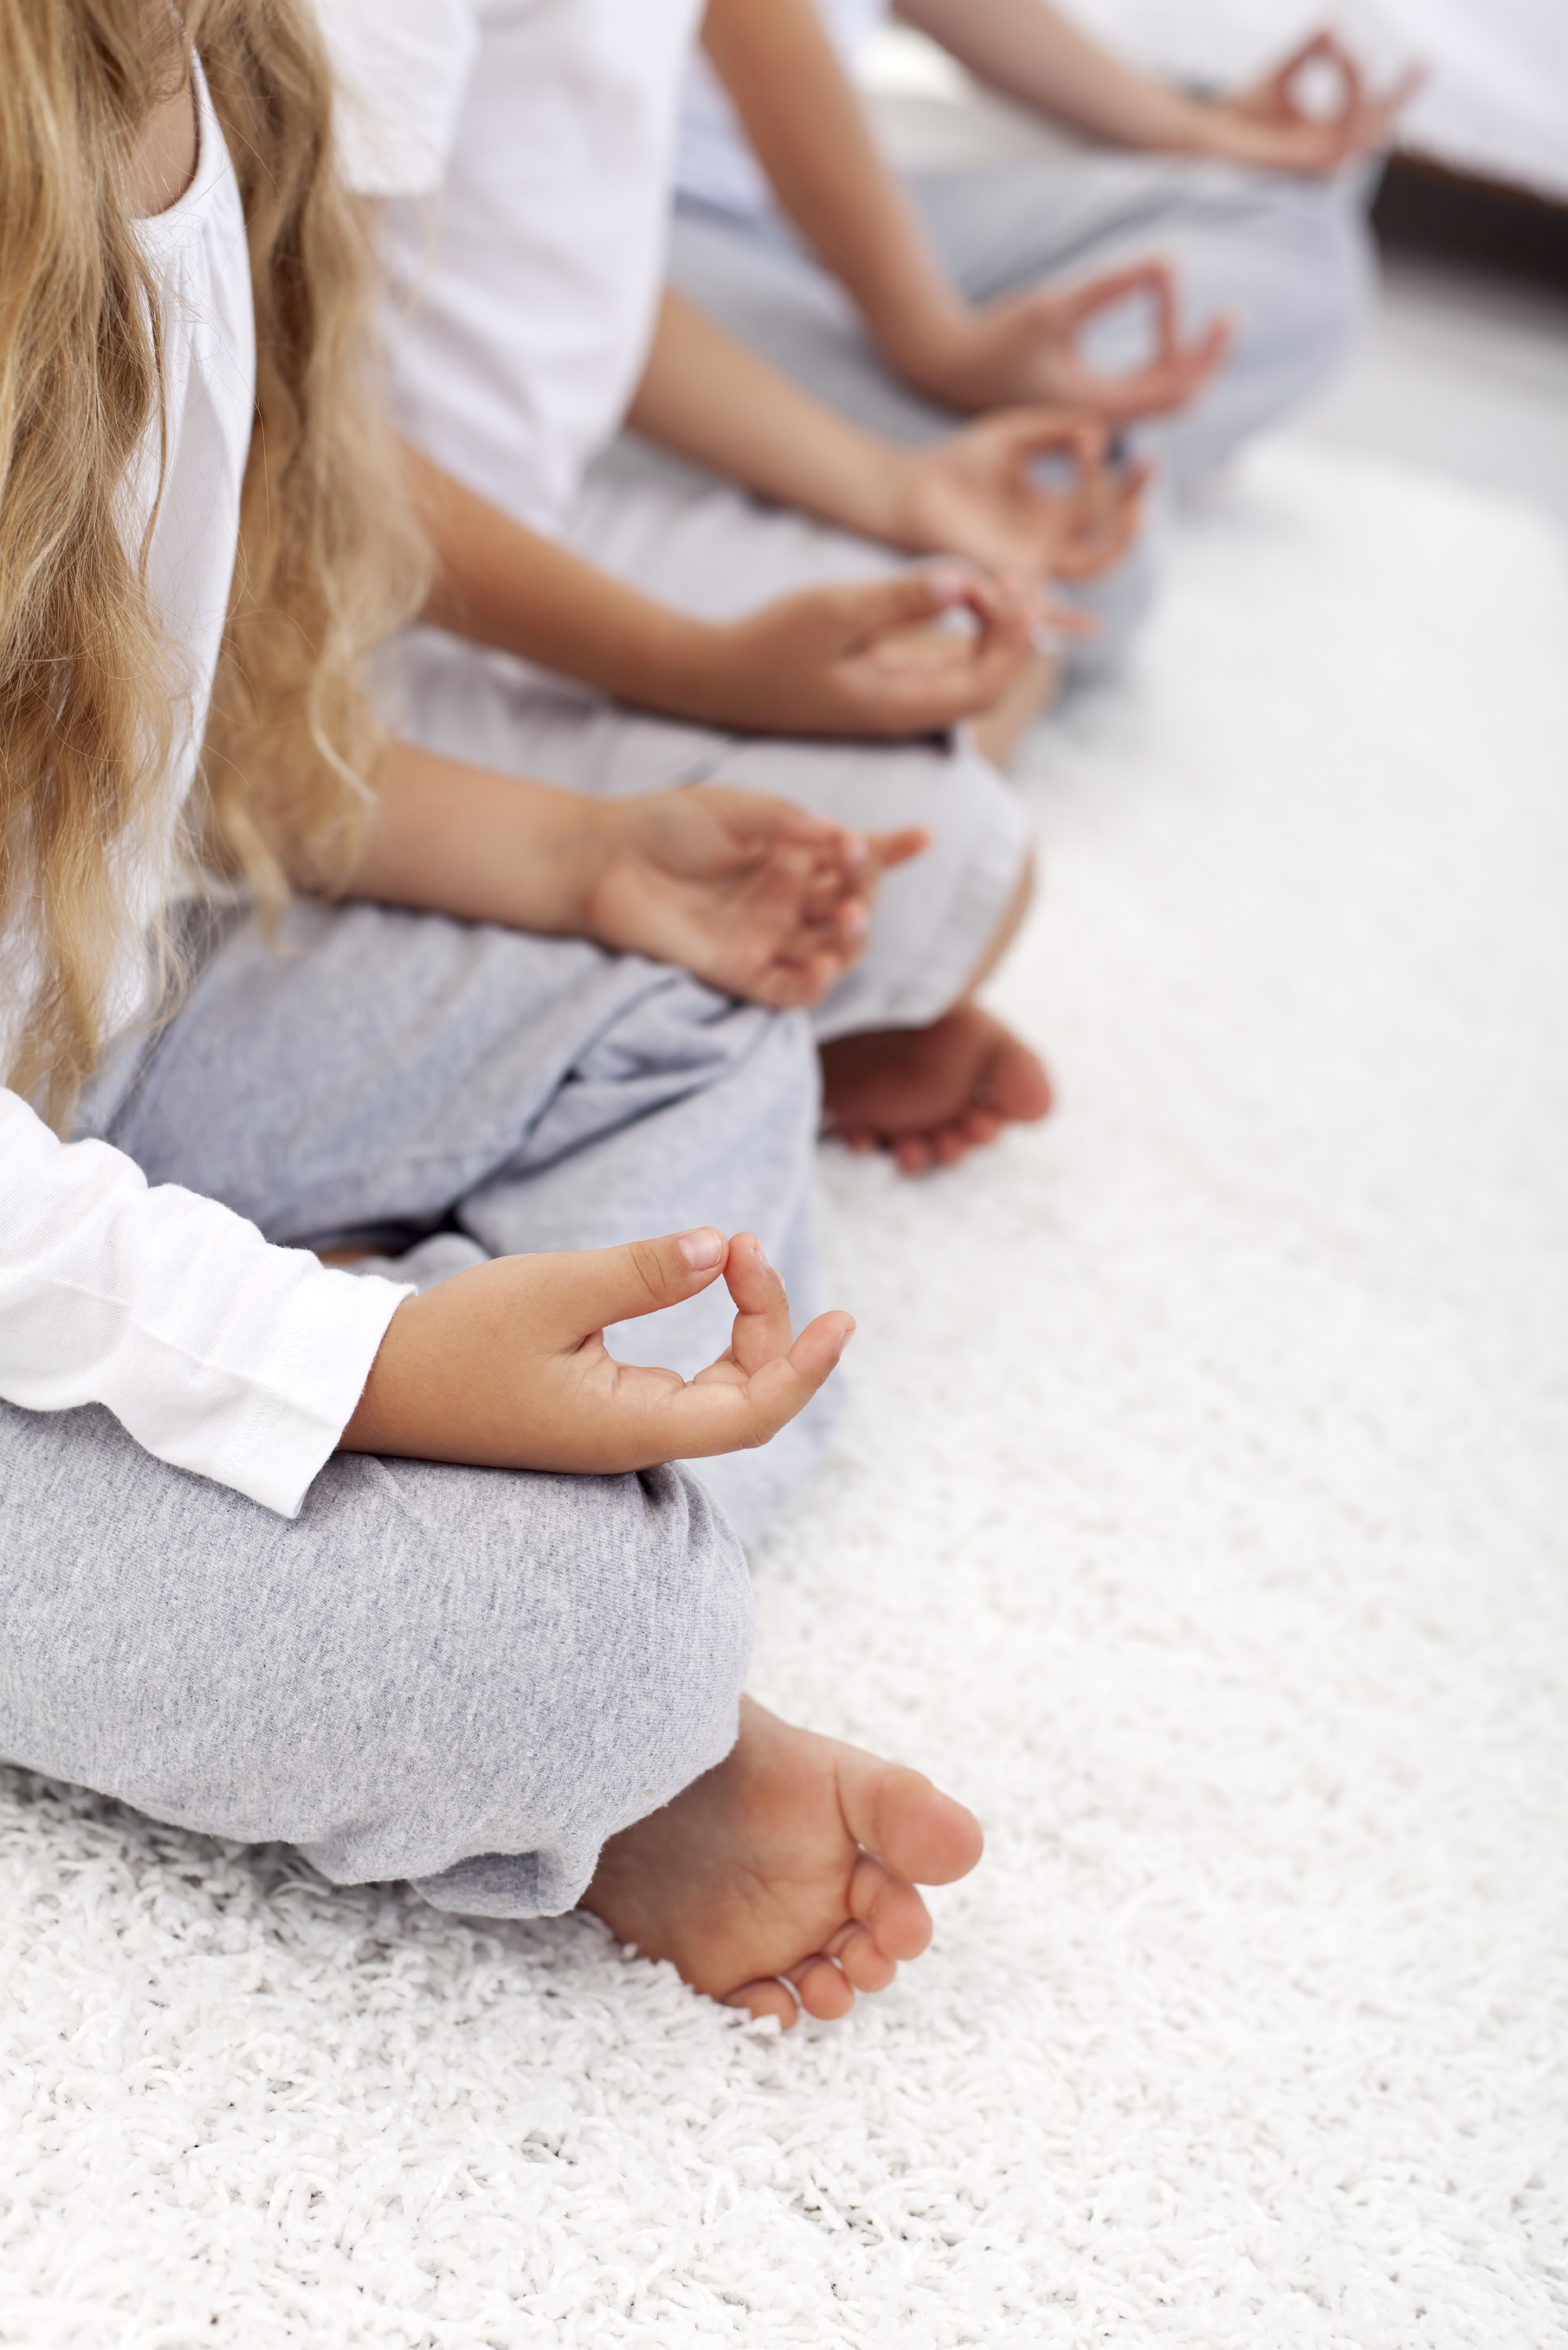 Lotus position yoga relaxation detail